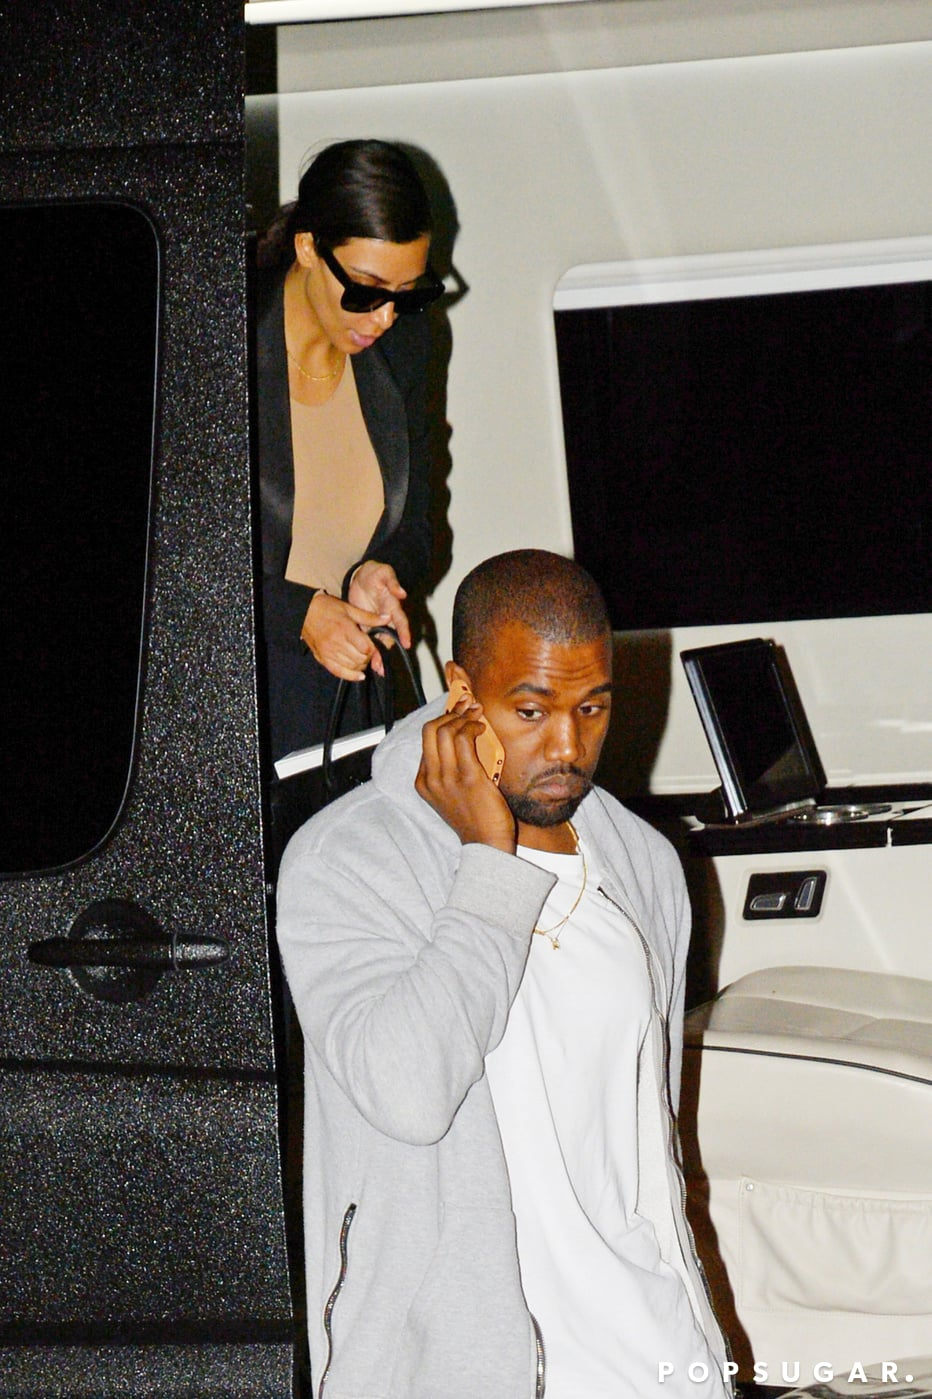 Kim and Kanye Prepare For Their Big Met Gala Appearance